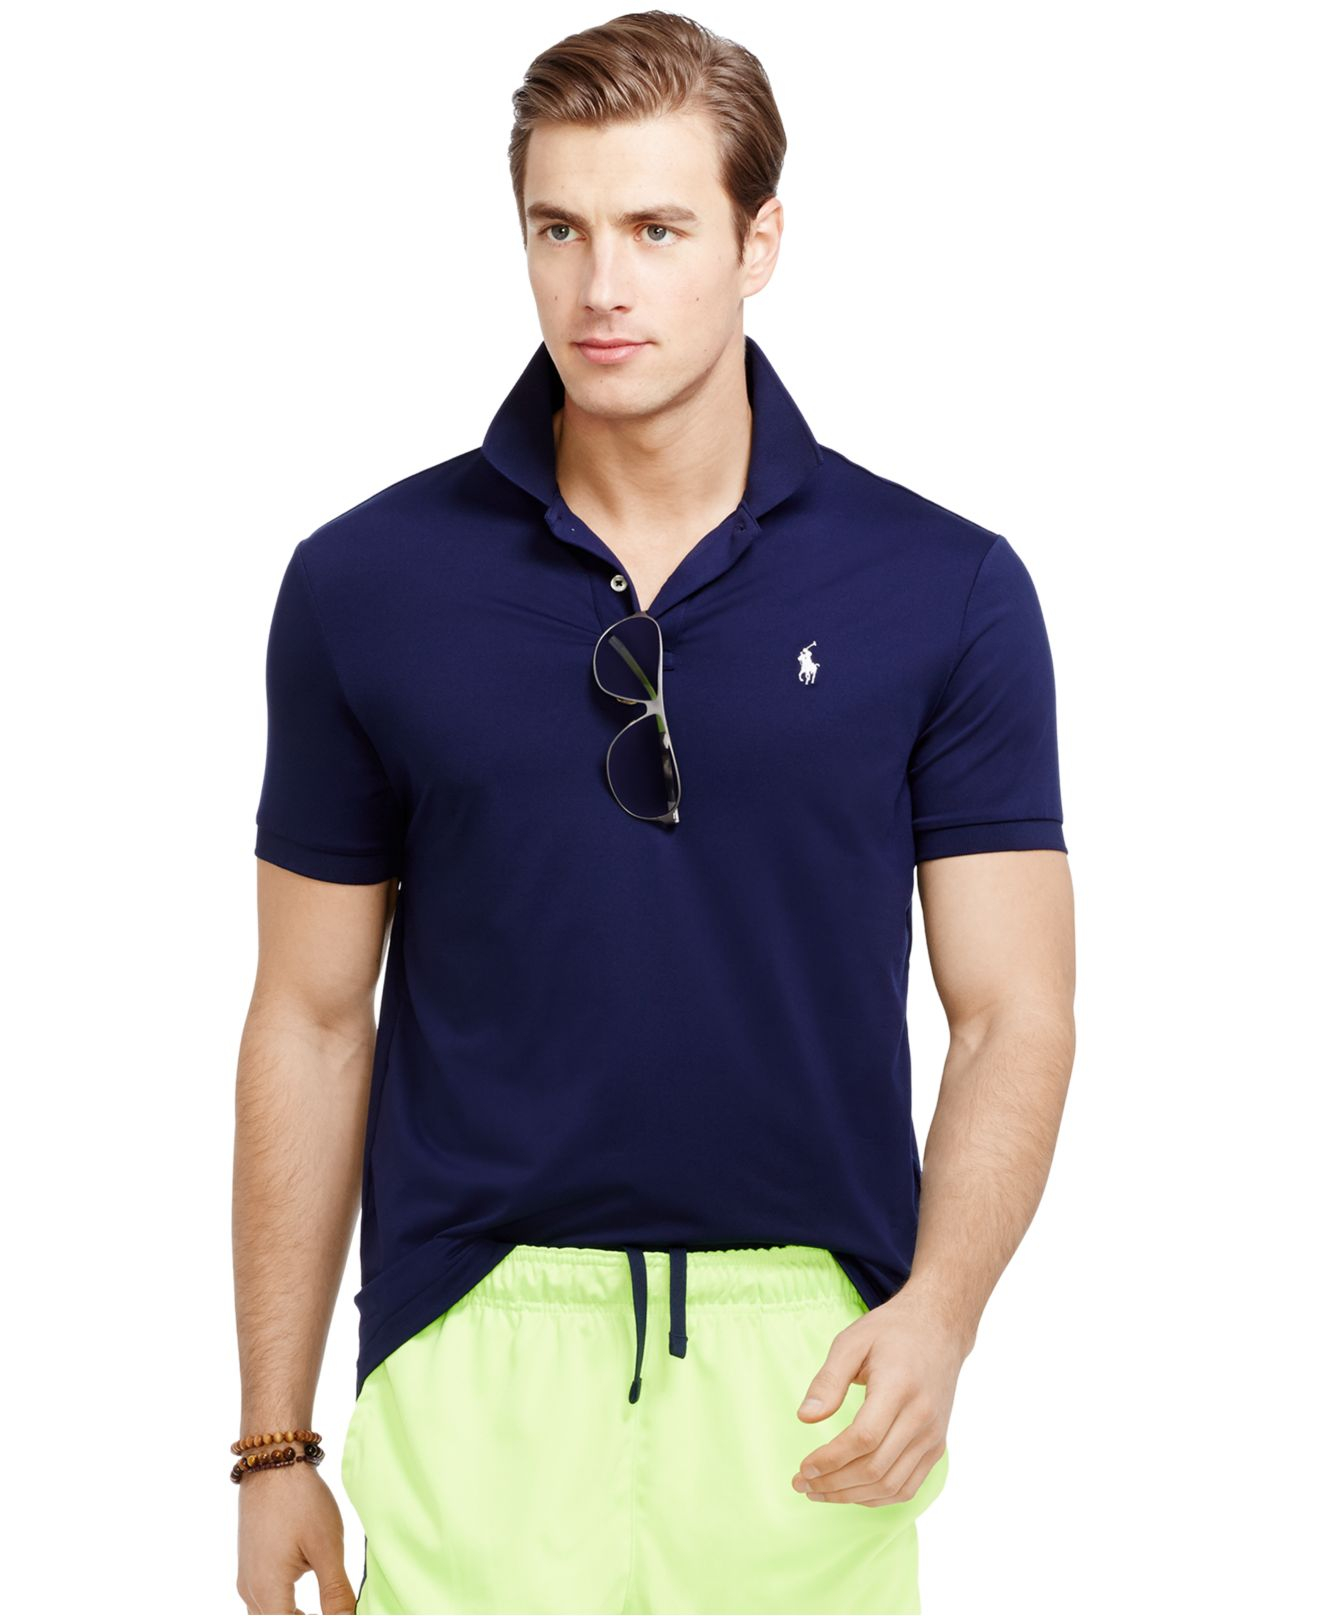 Polo ralph lauren performance polo shirt in blue for men Man in polo shirt